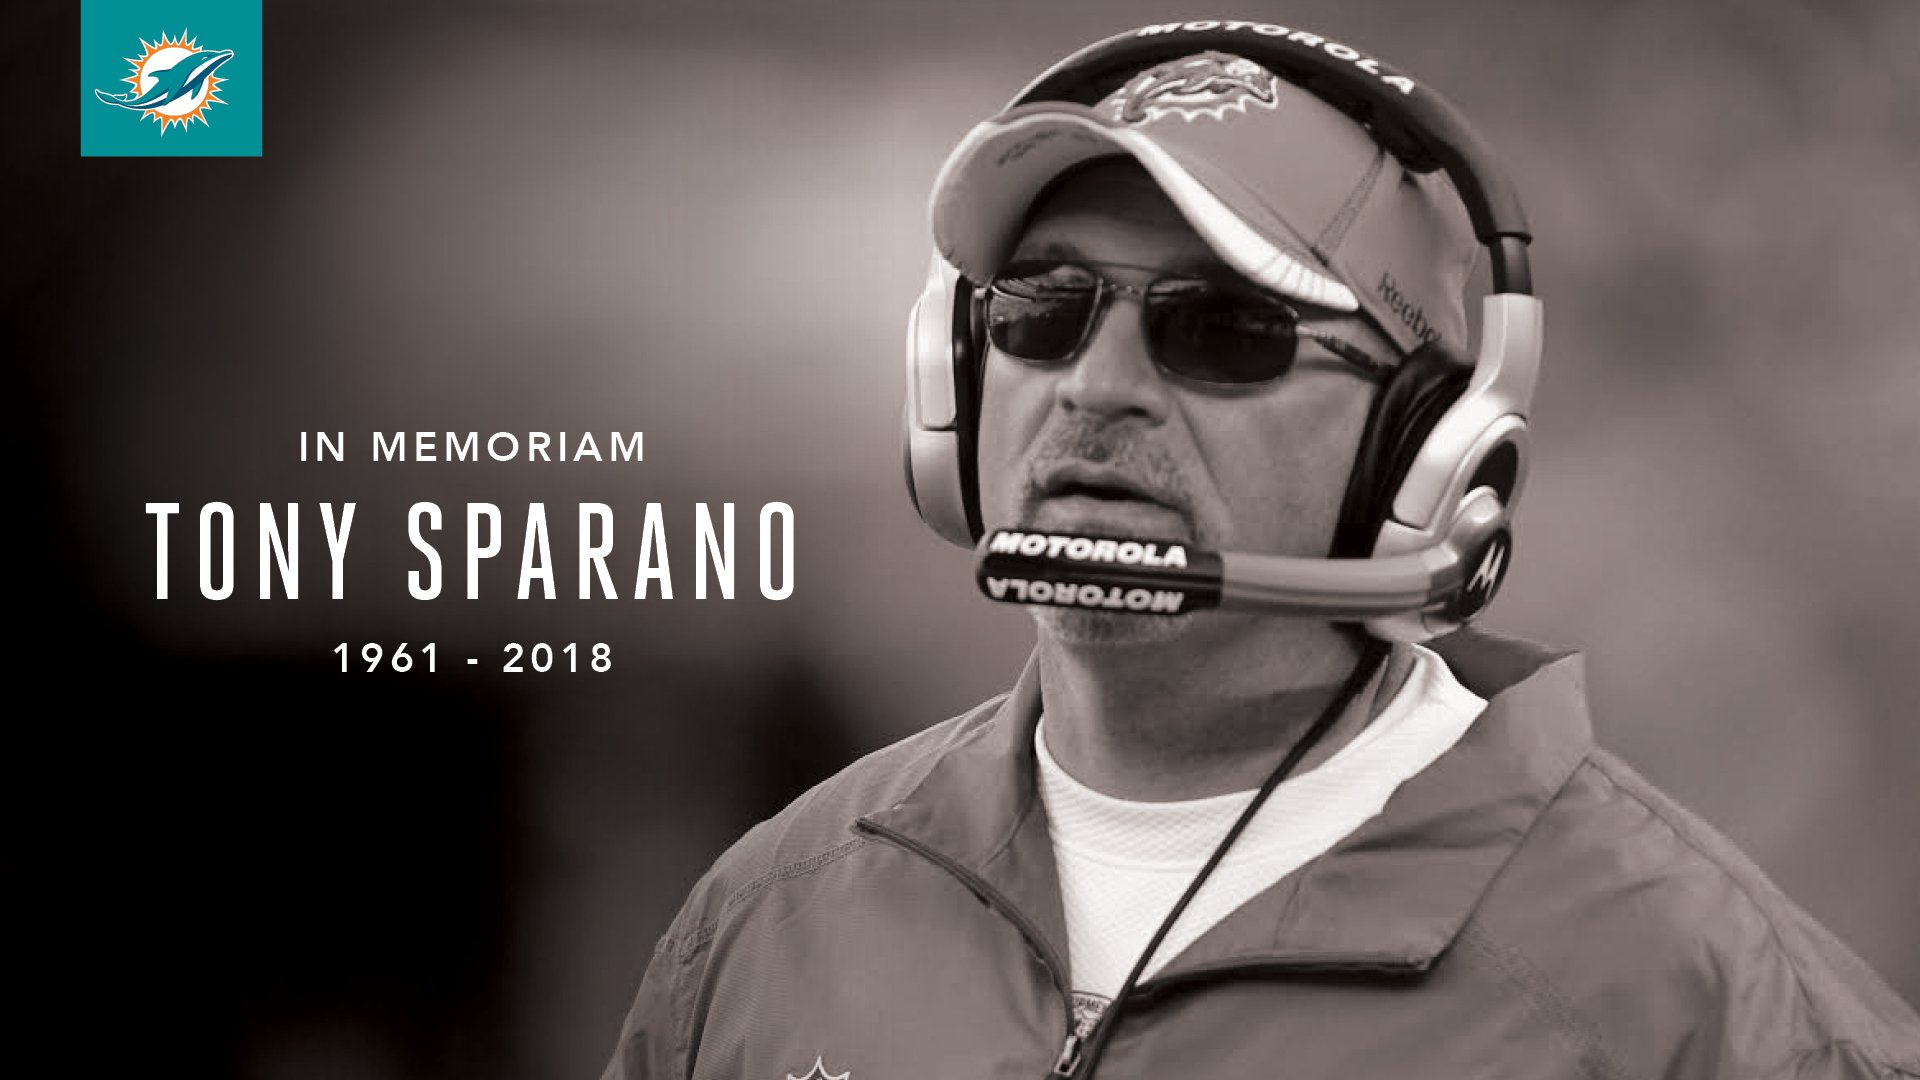 Our thoughts and prayers are with the family and friends of Coach Tony Sparano. https://t.co/UVxieE1Q6U